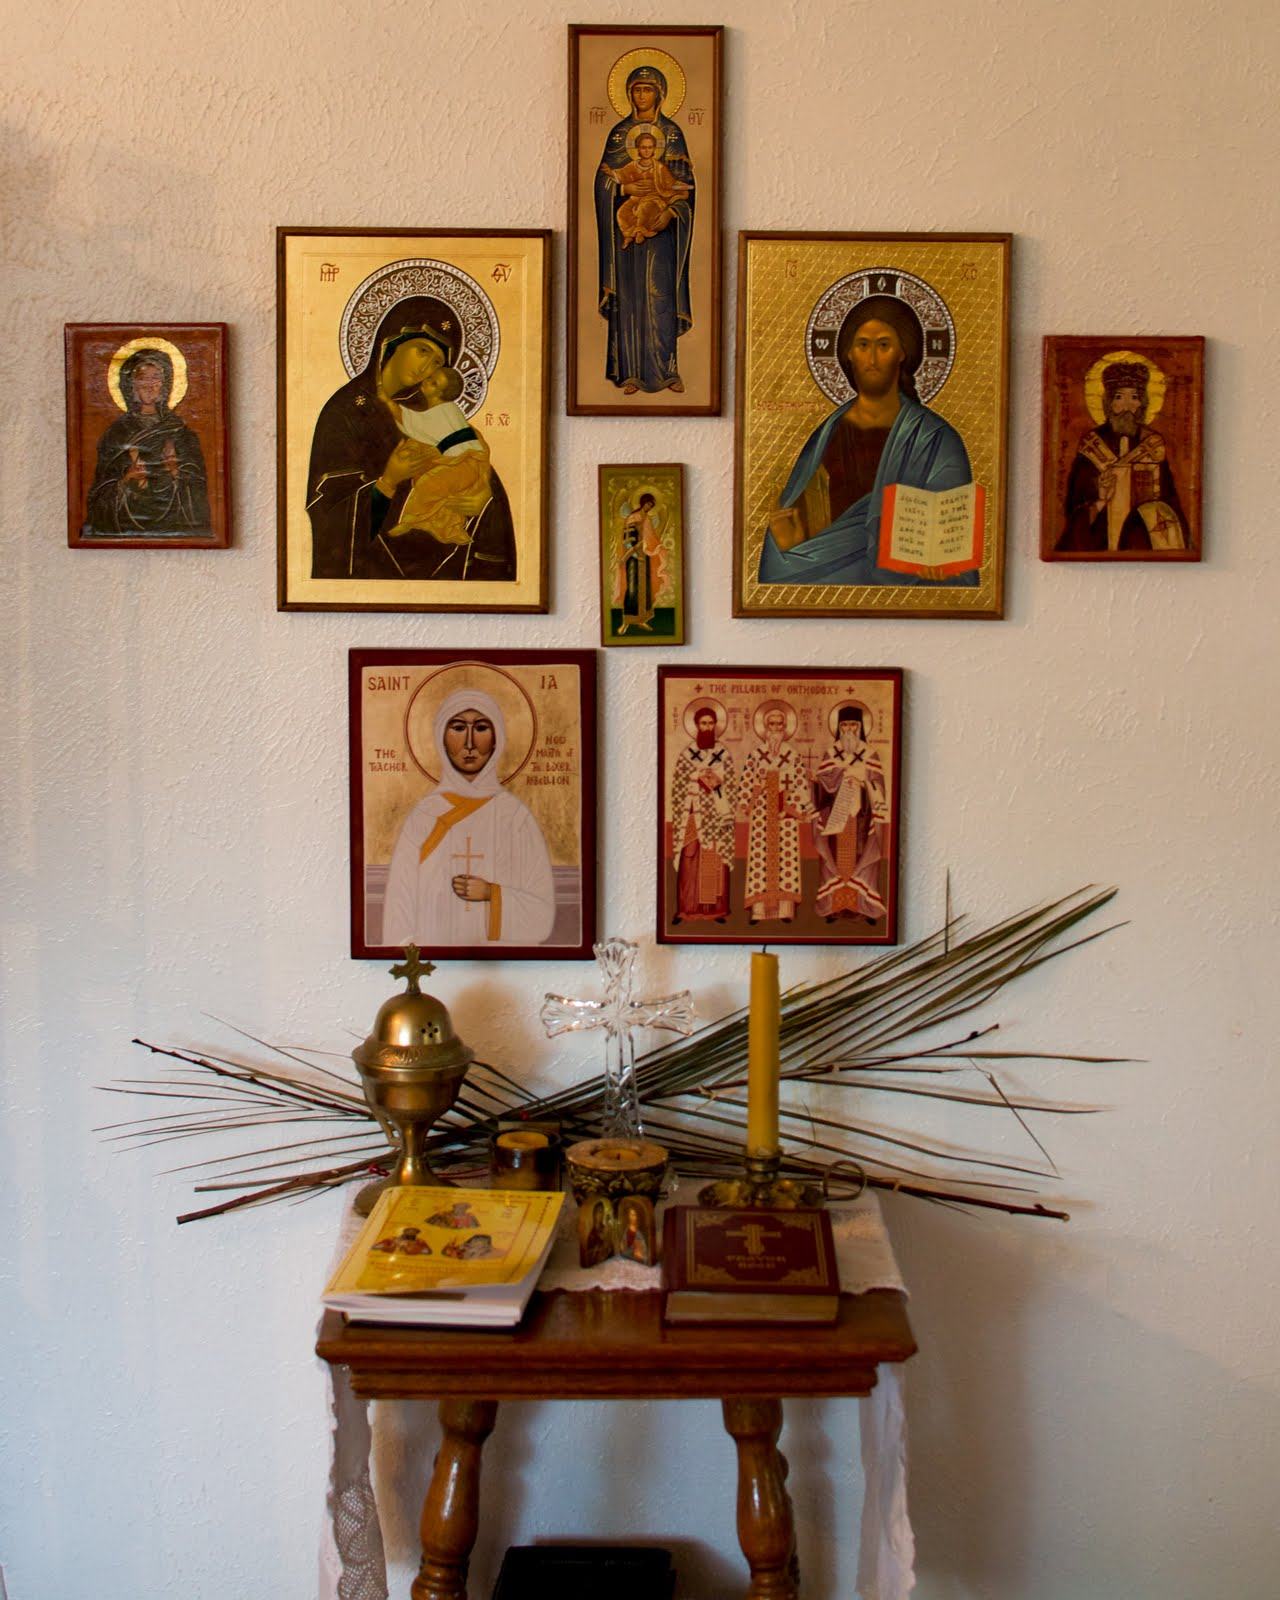 The Family Altar: Establishing a Place of Prayer dans immagini sacre icon-corner-02